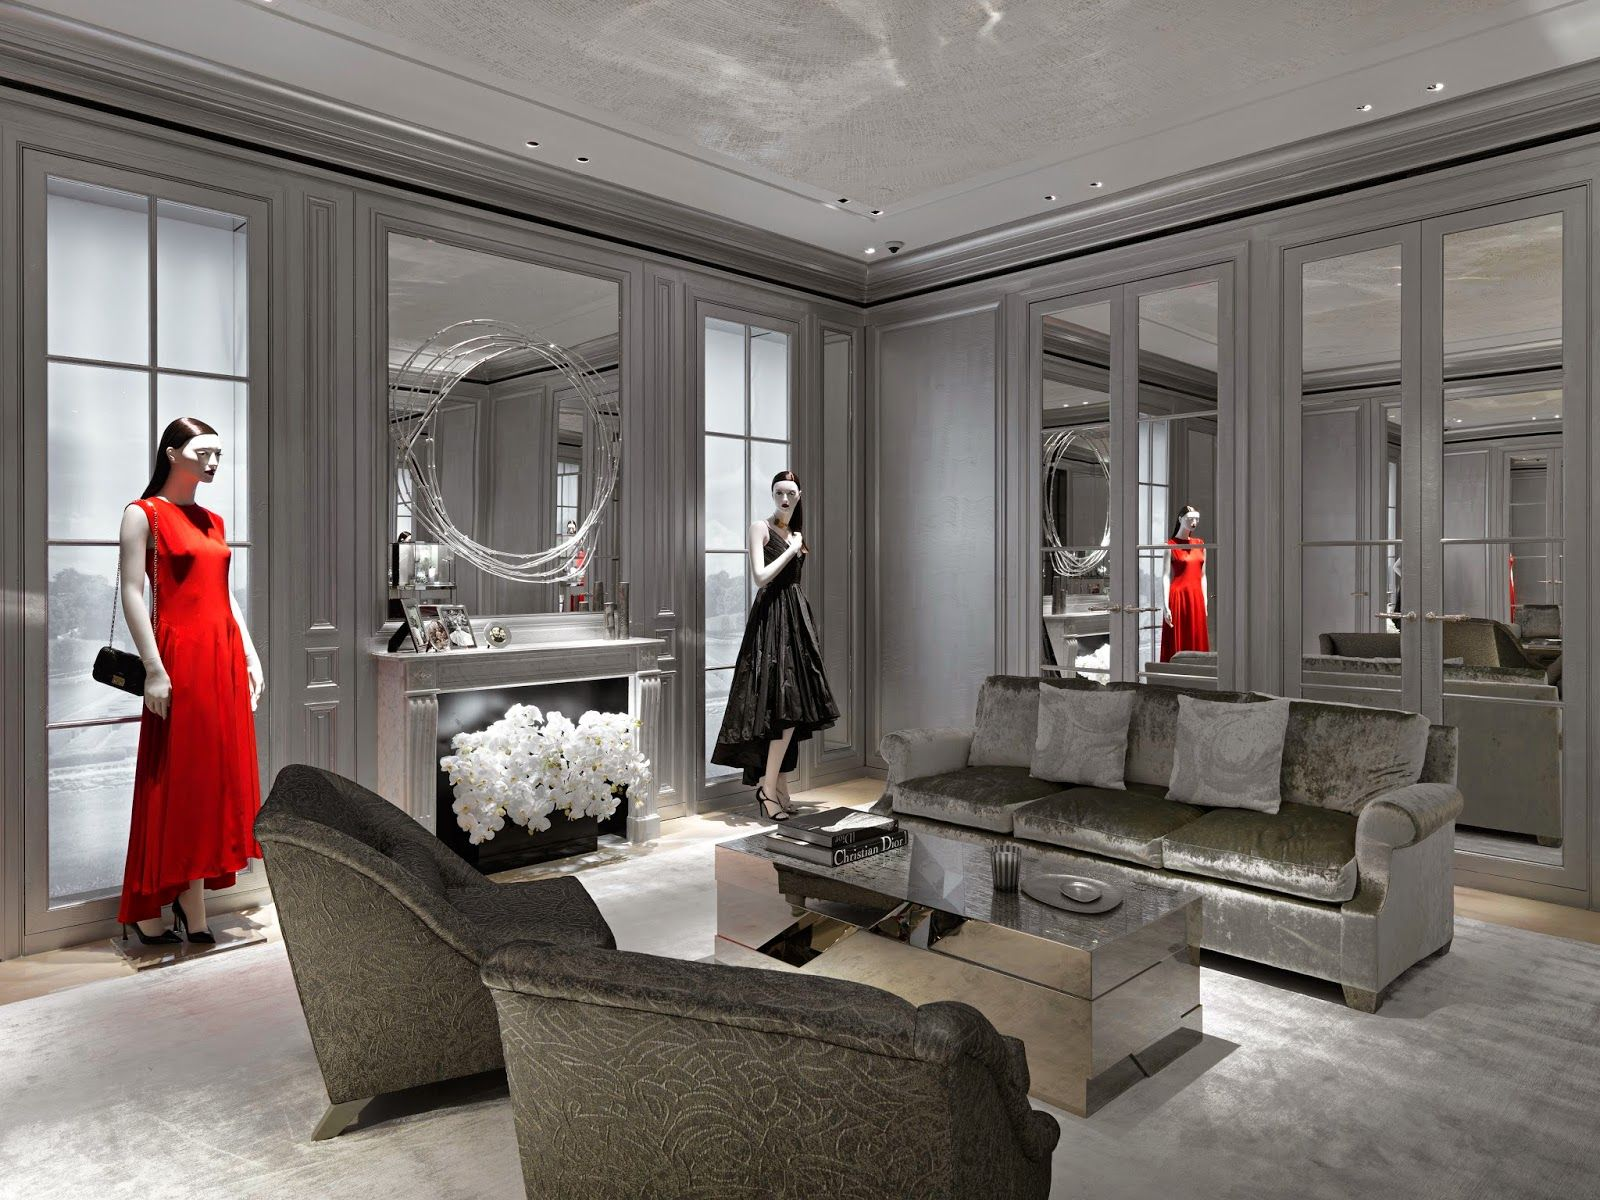 Dior boutique interior google search wood spring for Modern home decor boutiques